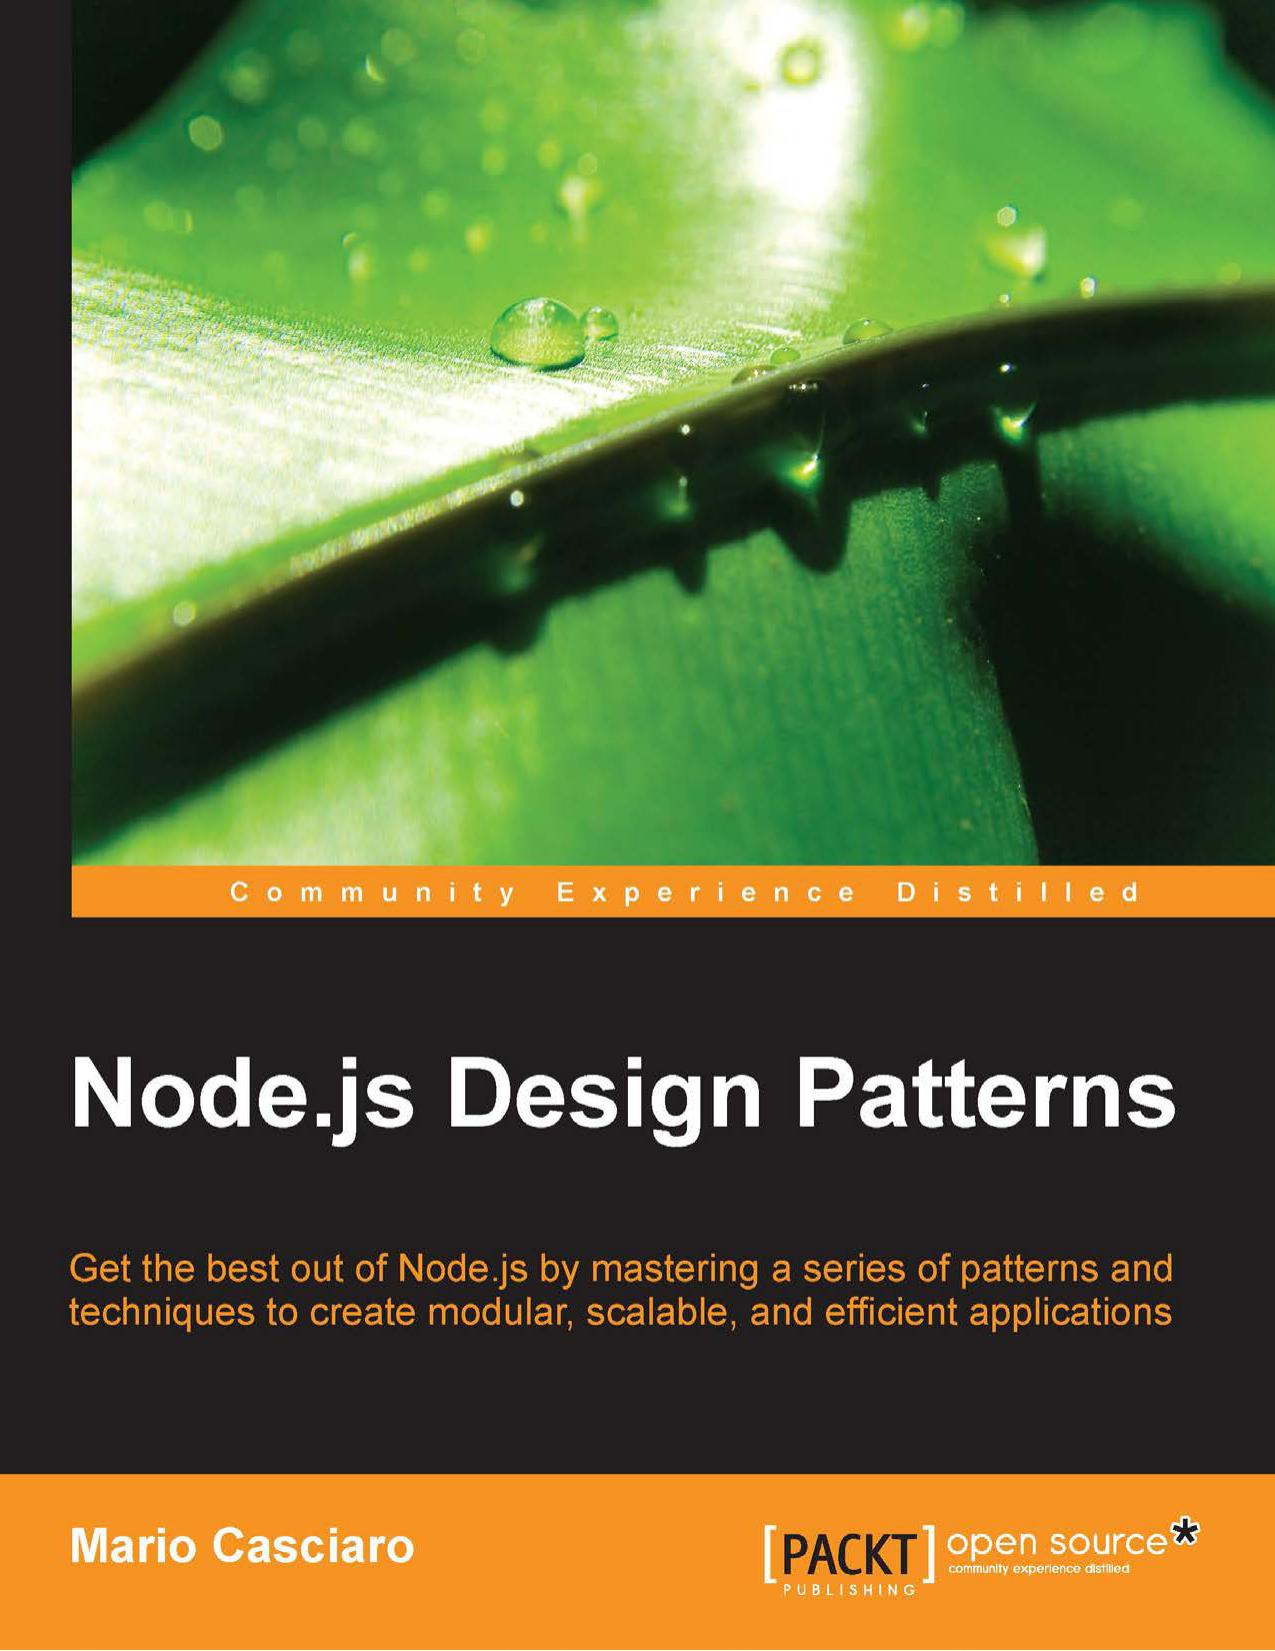 Node.js Design Patterns free download